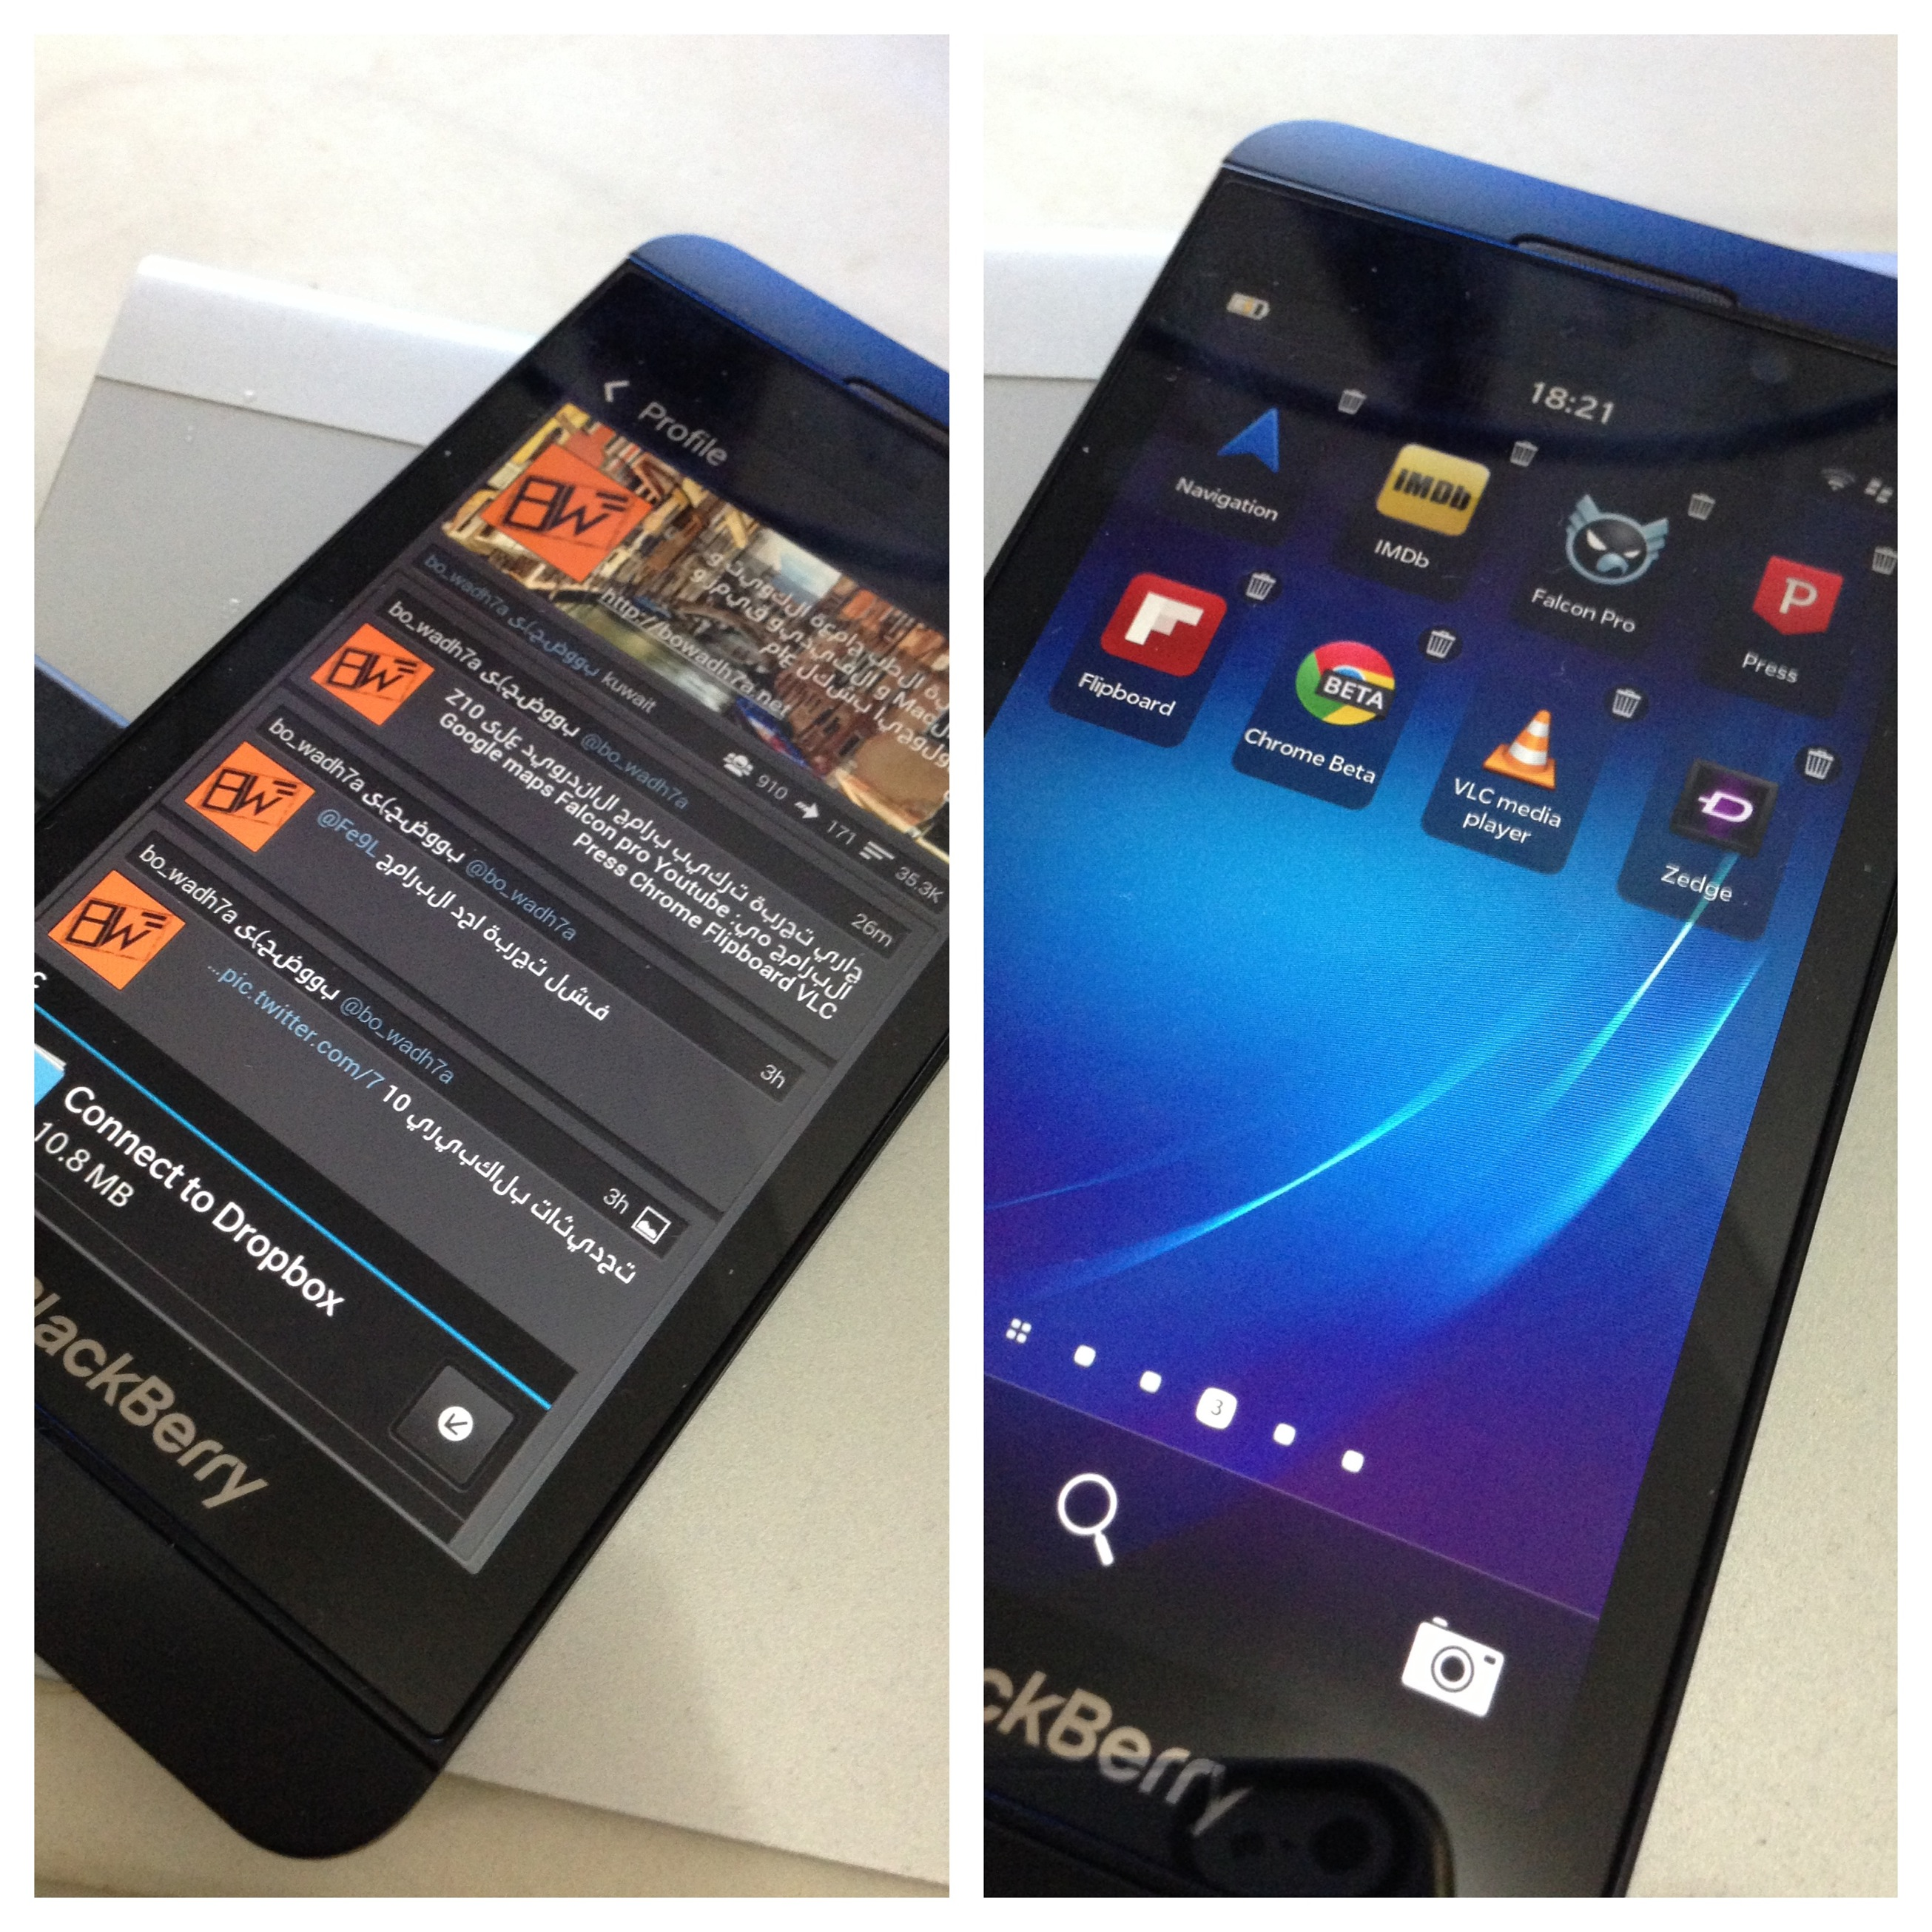 Android apps on Z10